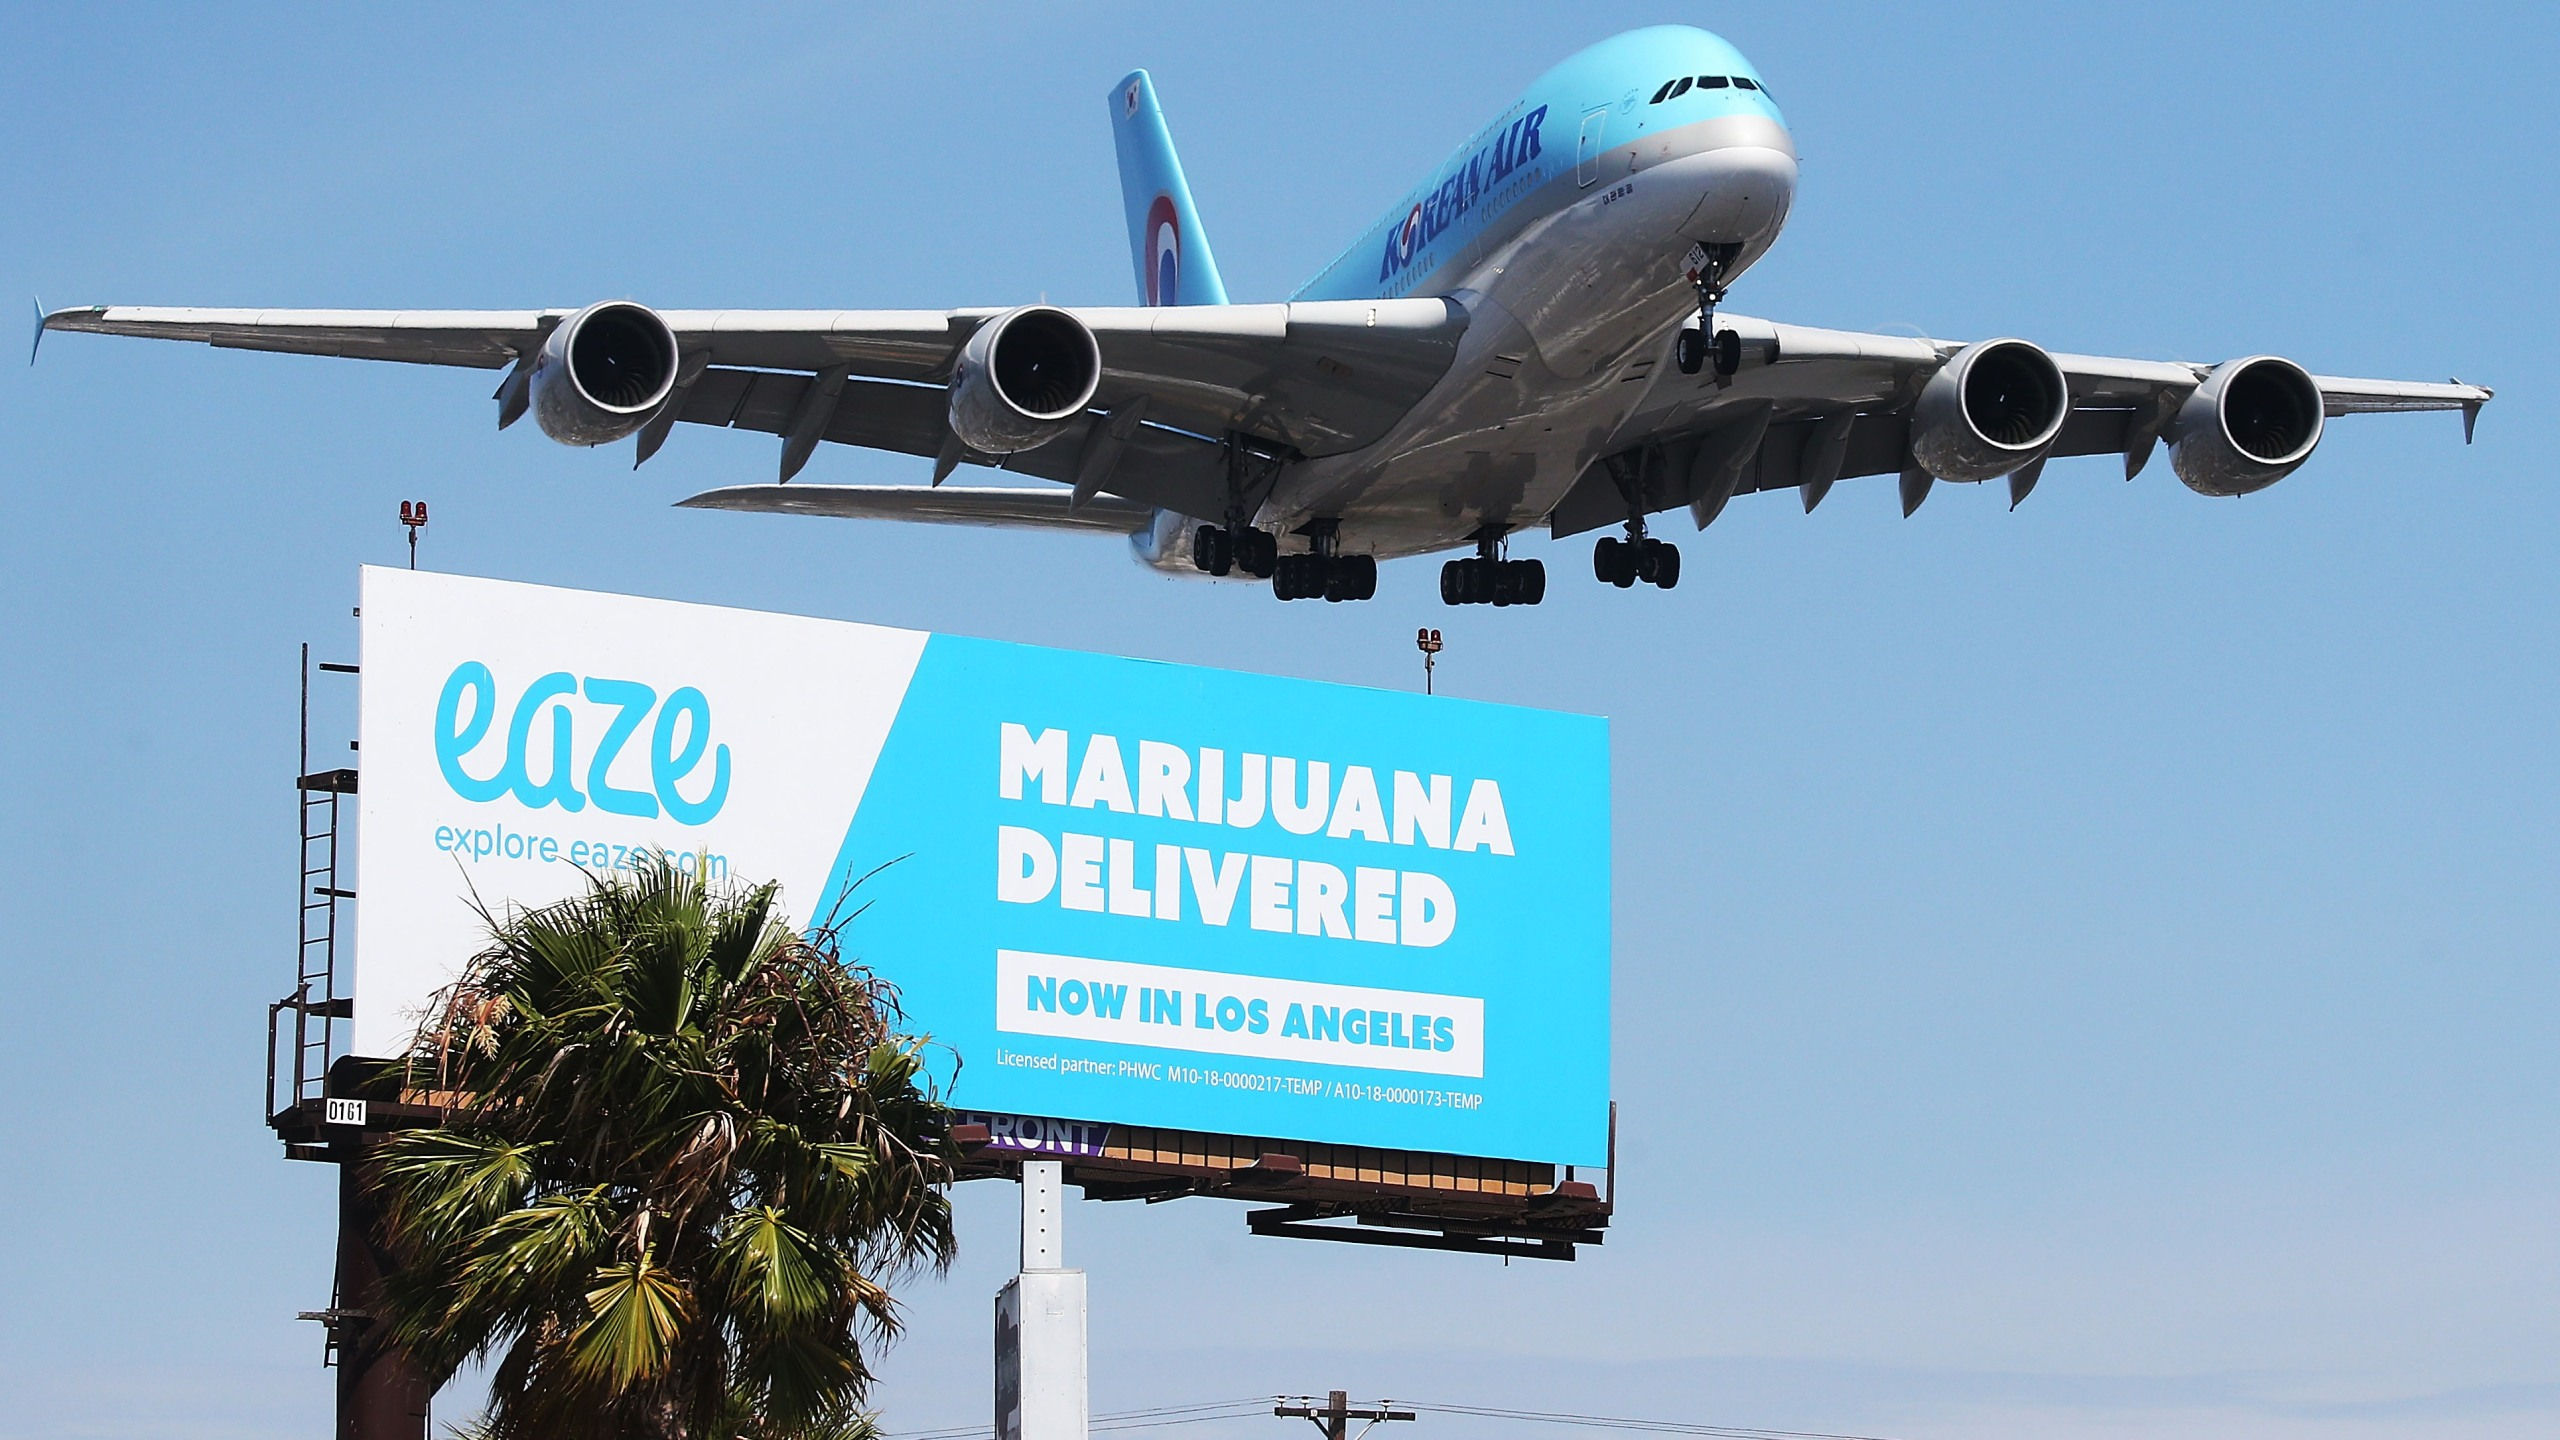 An airplane descends to land at Los Angeles International Airport above a billboard advertising the marijuana delivery service Eaze on July 12, 2018 in Los Angeles, California. (Mario Tama/Getty Images)